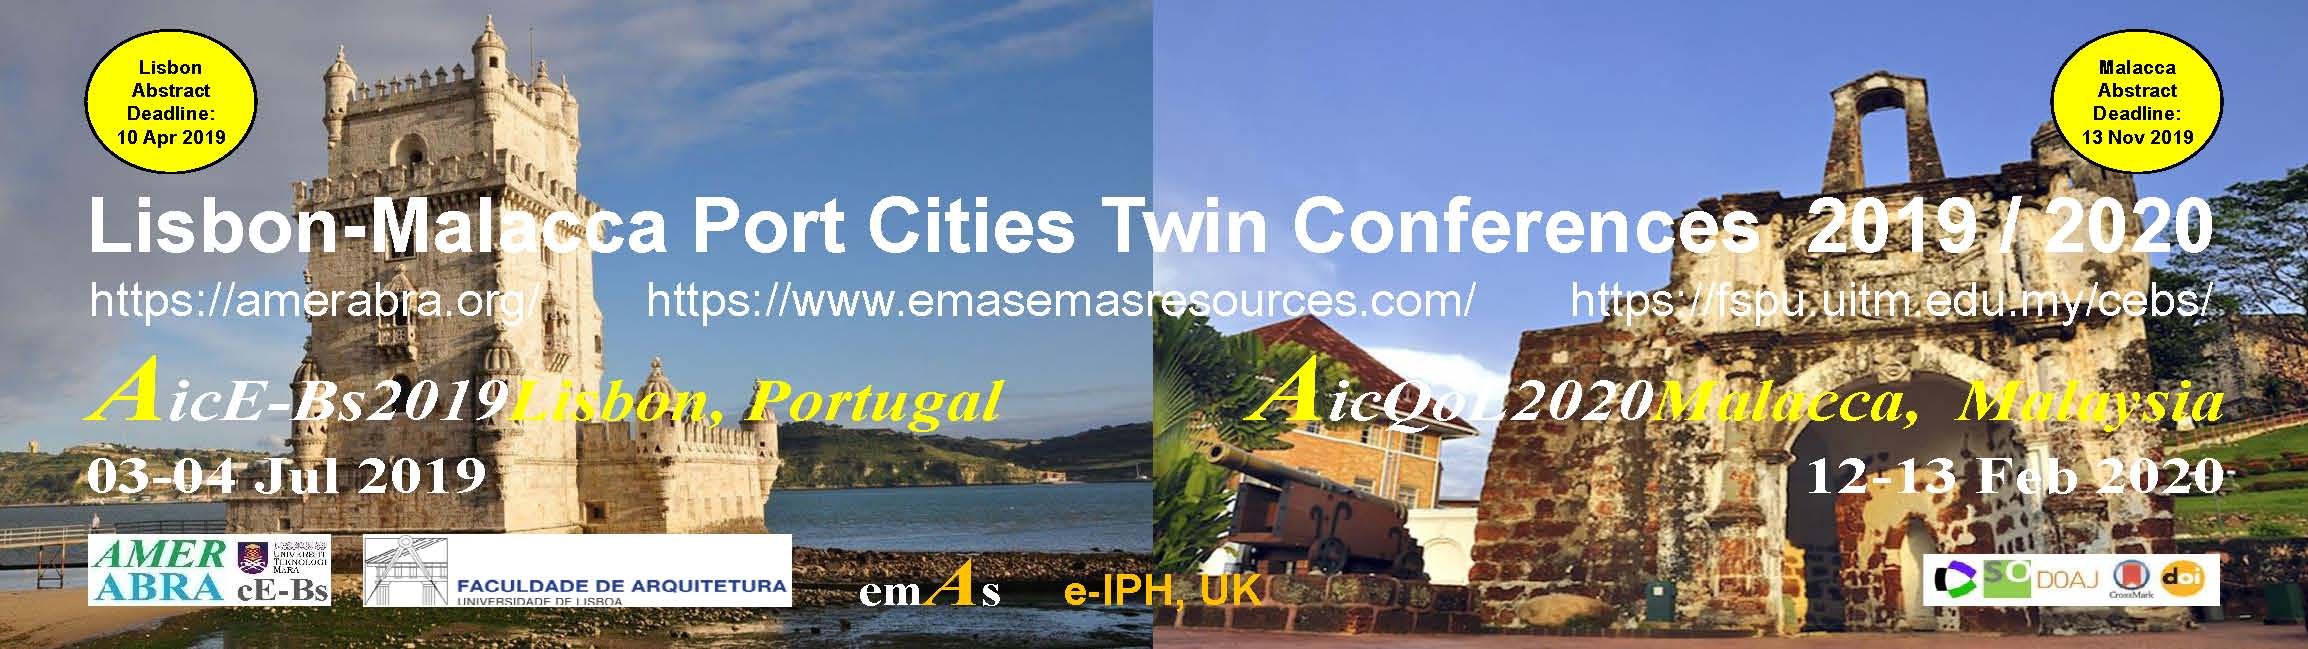 Lisbon-Malacca Port Cities Twin Conferences 2019/2020